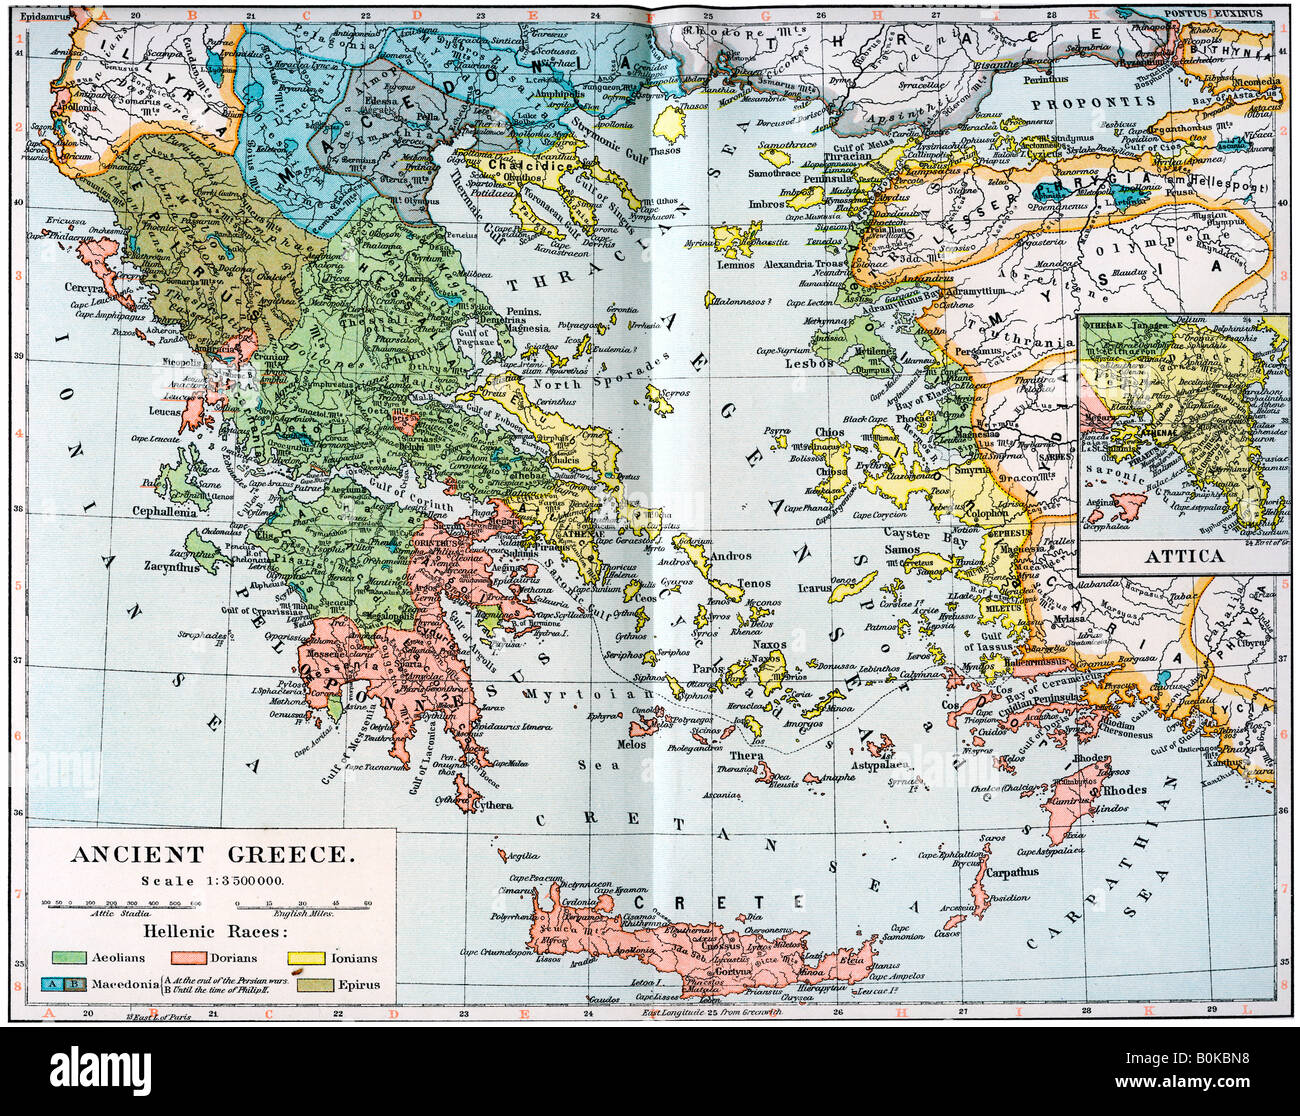 Topographic Map Of Ancient Greece.Map Of Ancient Greece Stock Photos Map Of Ancient Greece Stock